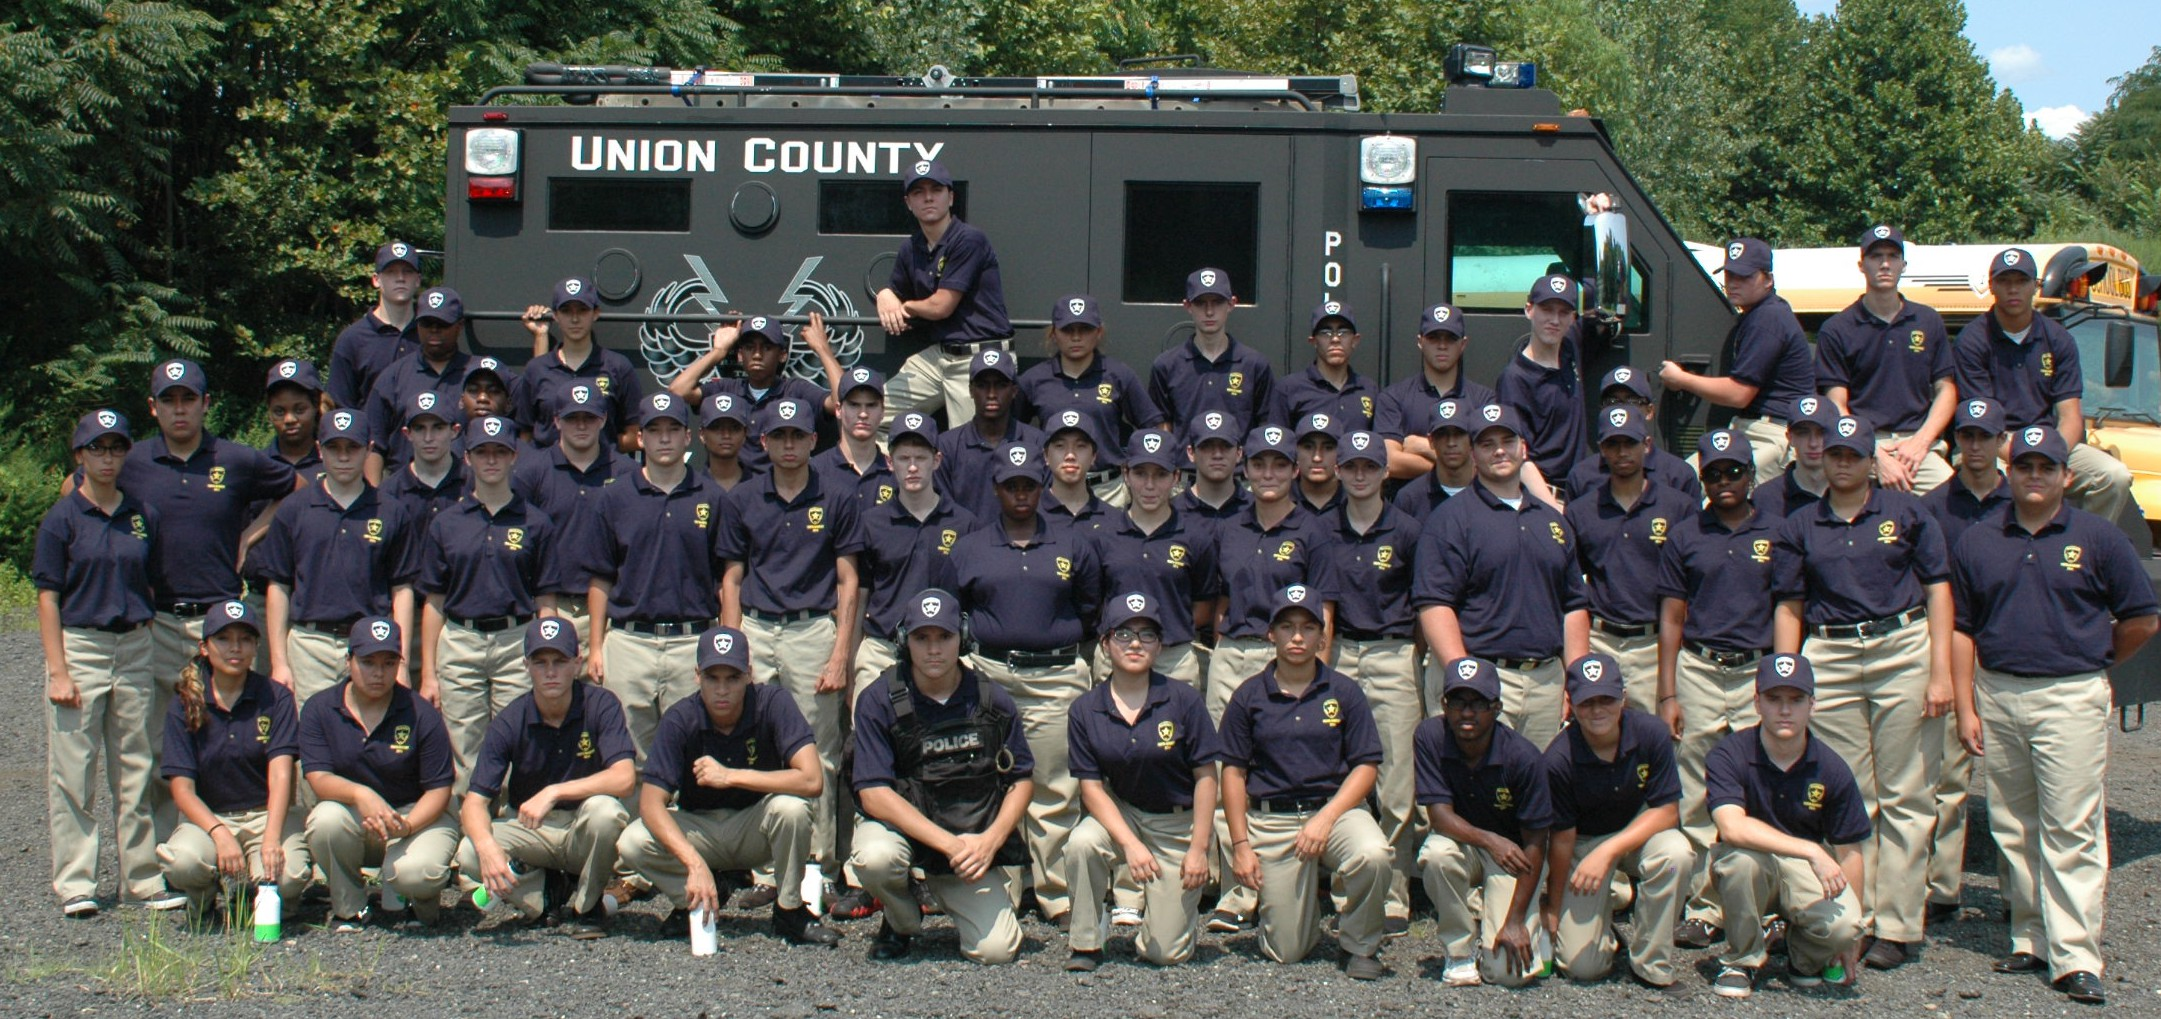 Youth Academy – Union County Sheriff's Office